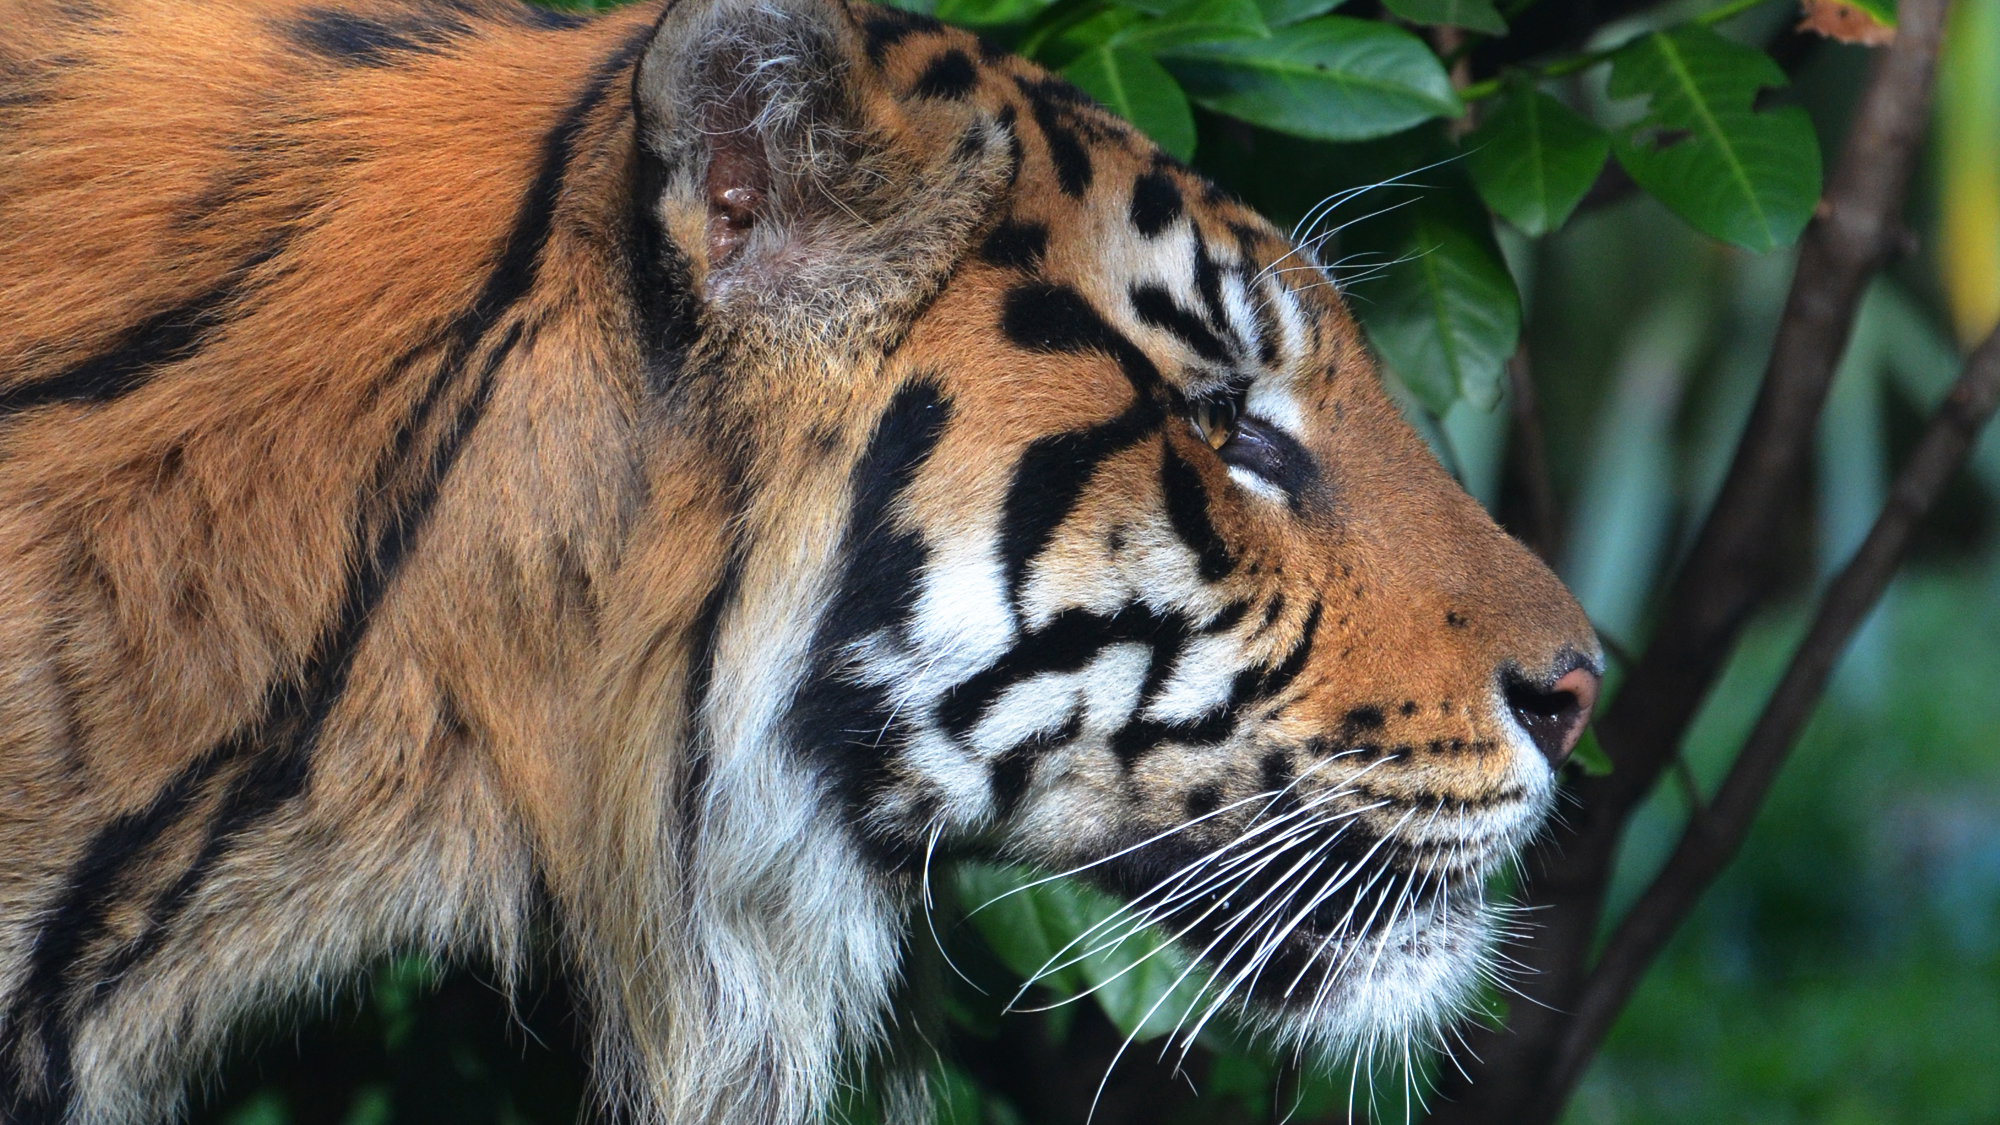 Securing a future for tigers | Zoological Society of ...